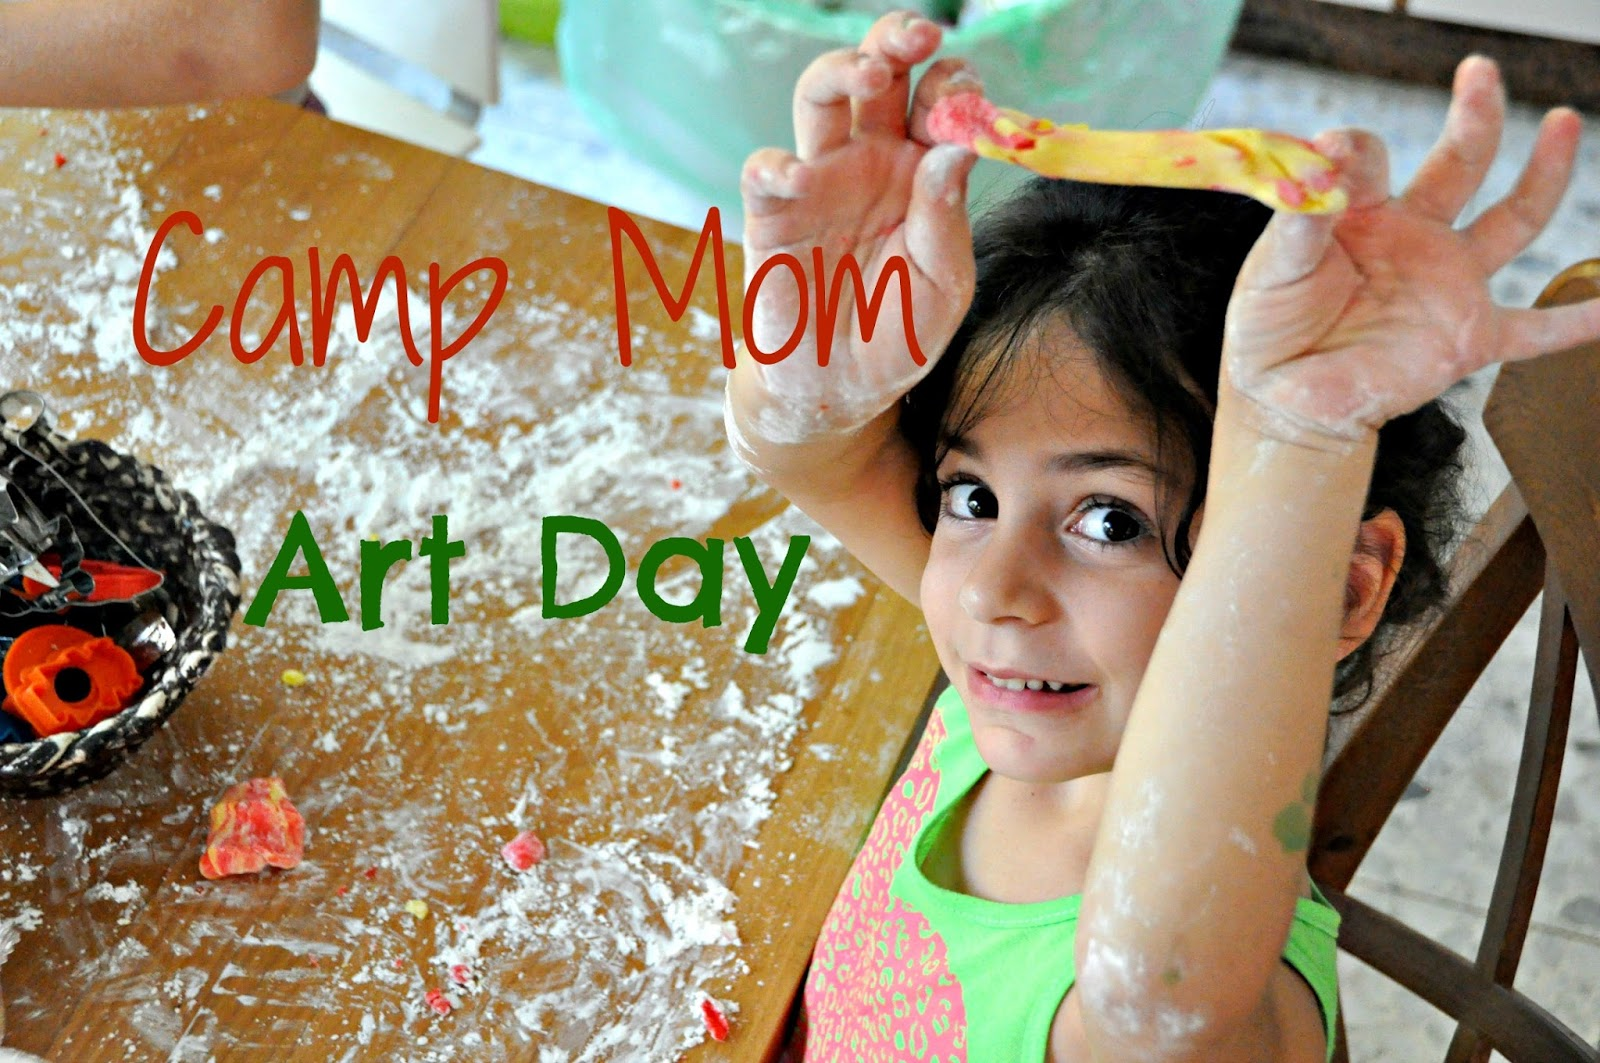 Camp Mom - Art Day